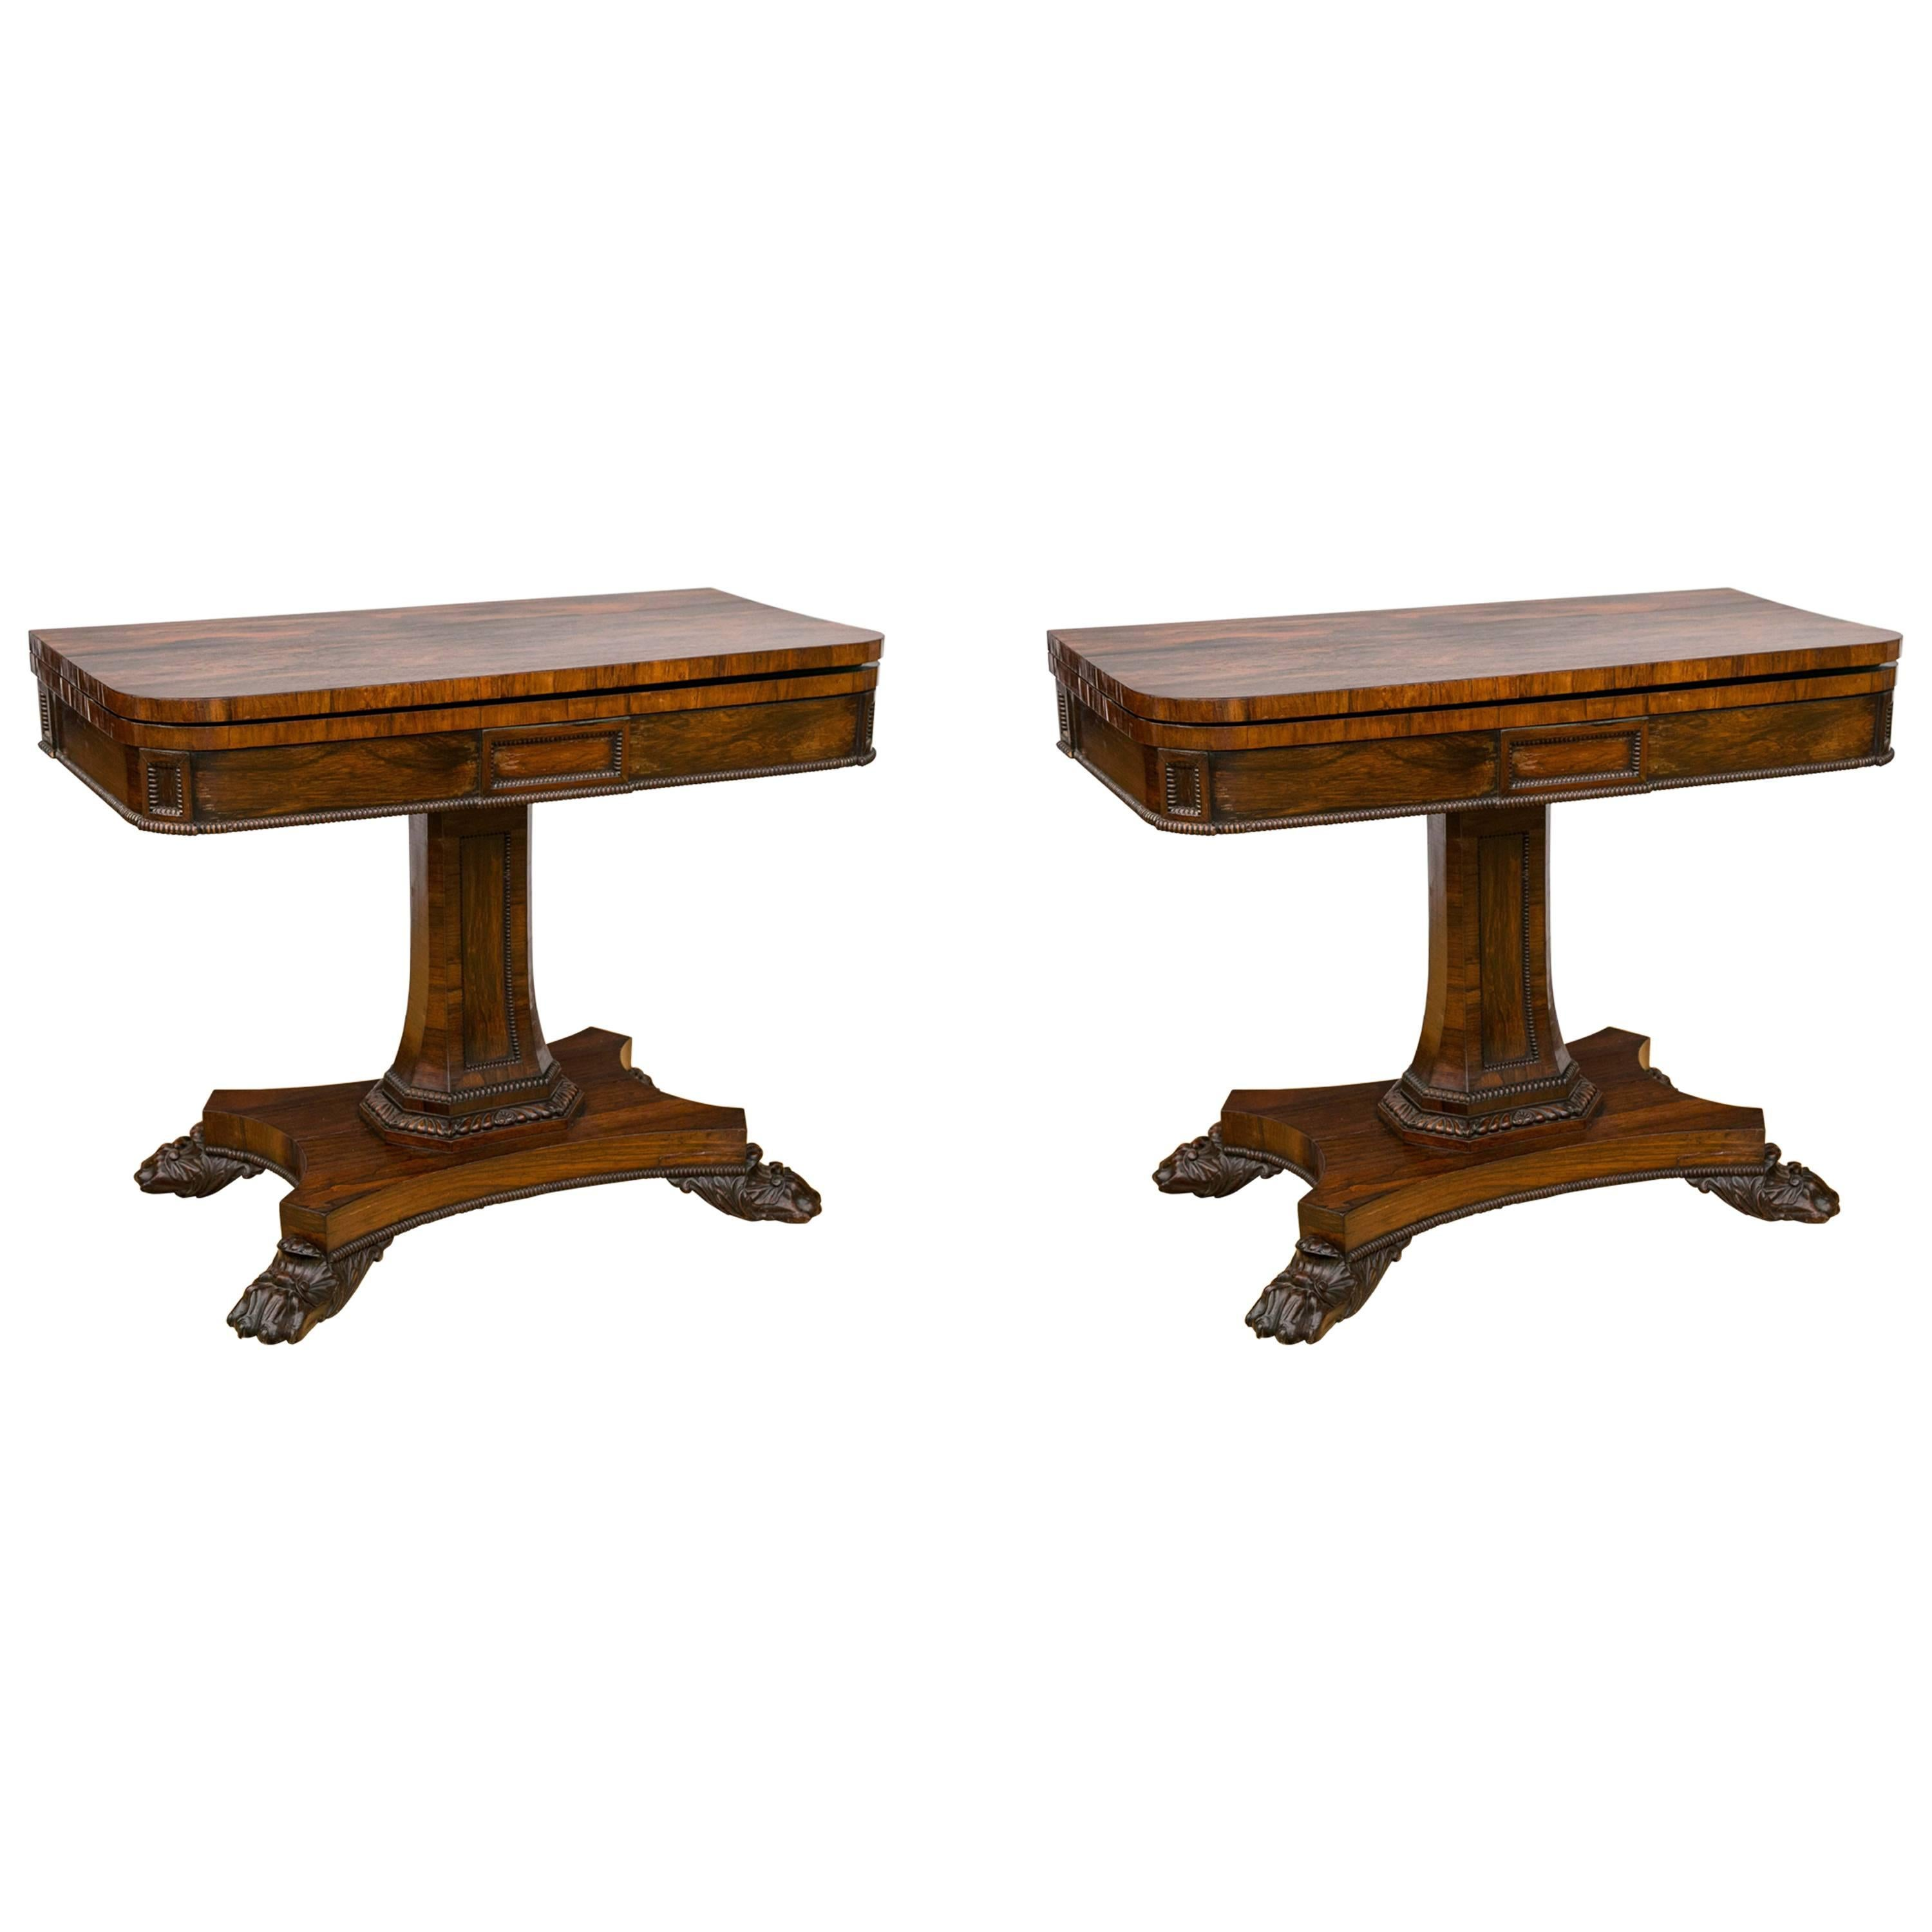 Pair of English Regency Period Rosewood Game Tables